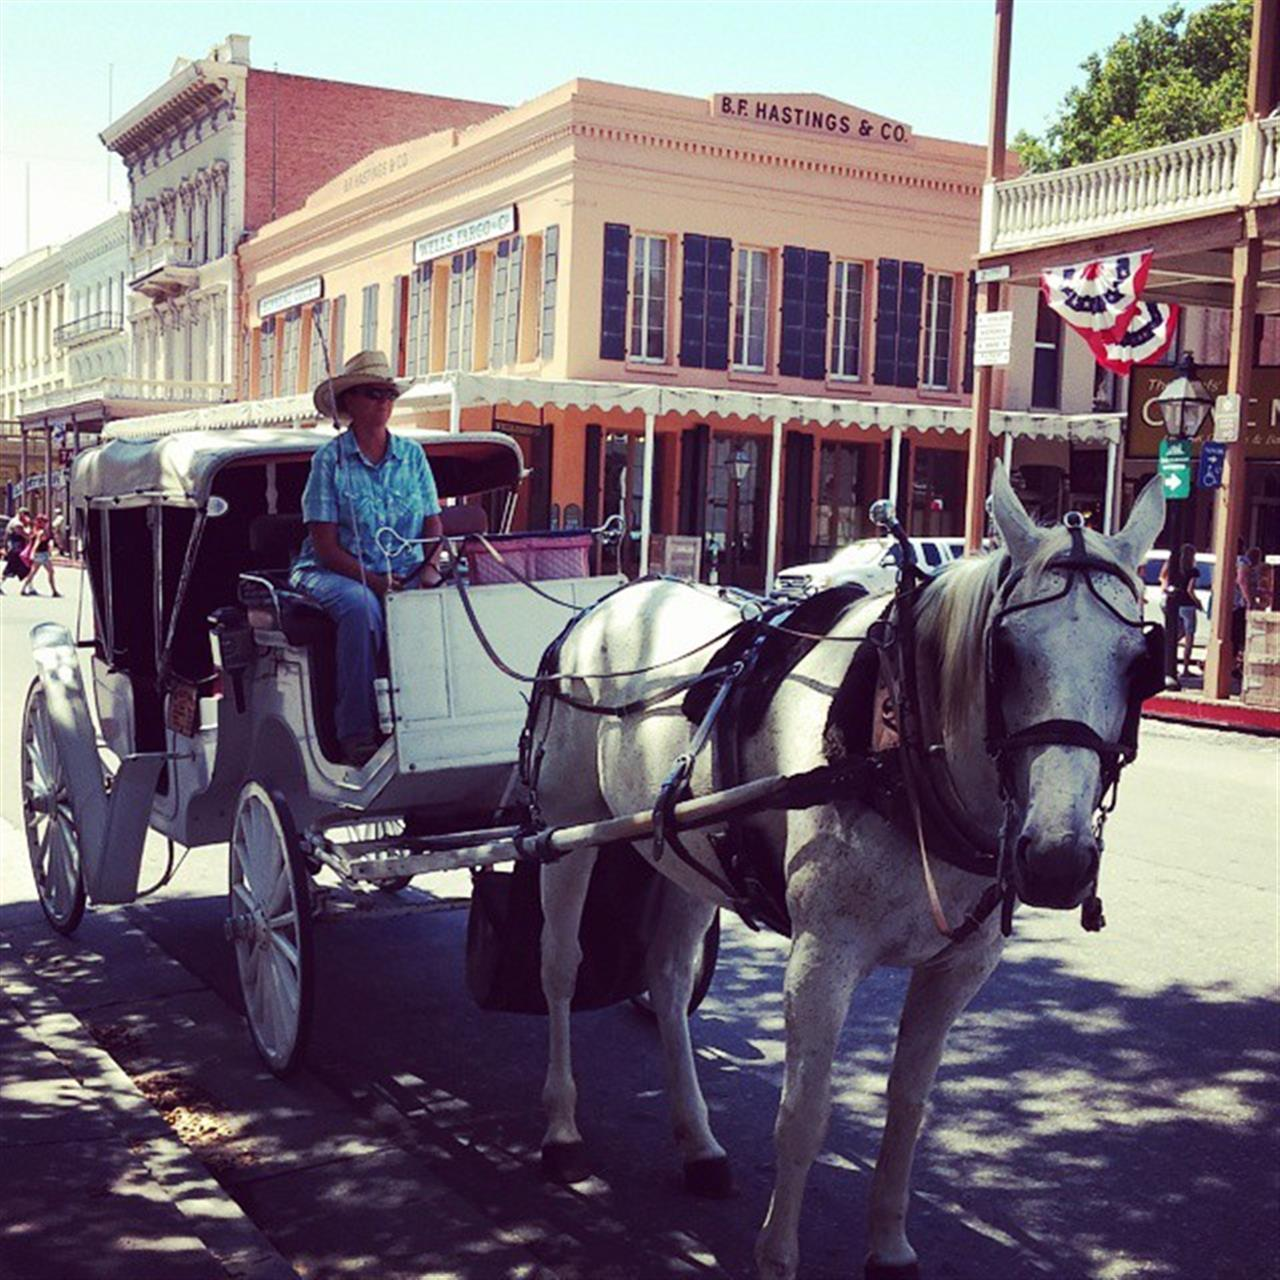 Best way to experience #oldsacramento is on a horse drawn carriage. #leadingrelocal #lyonrealestate #carriageride